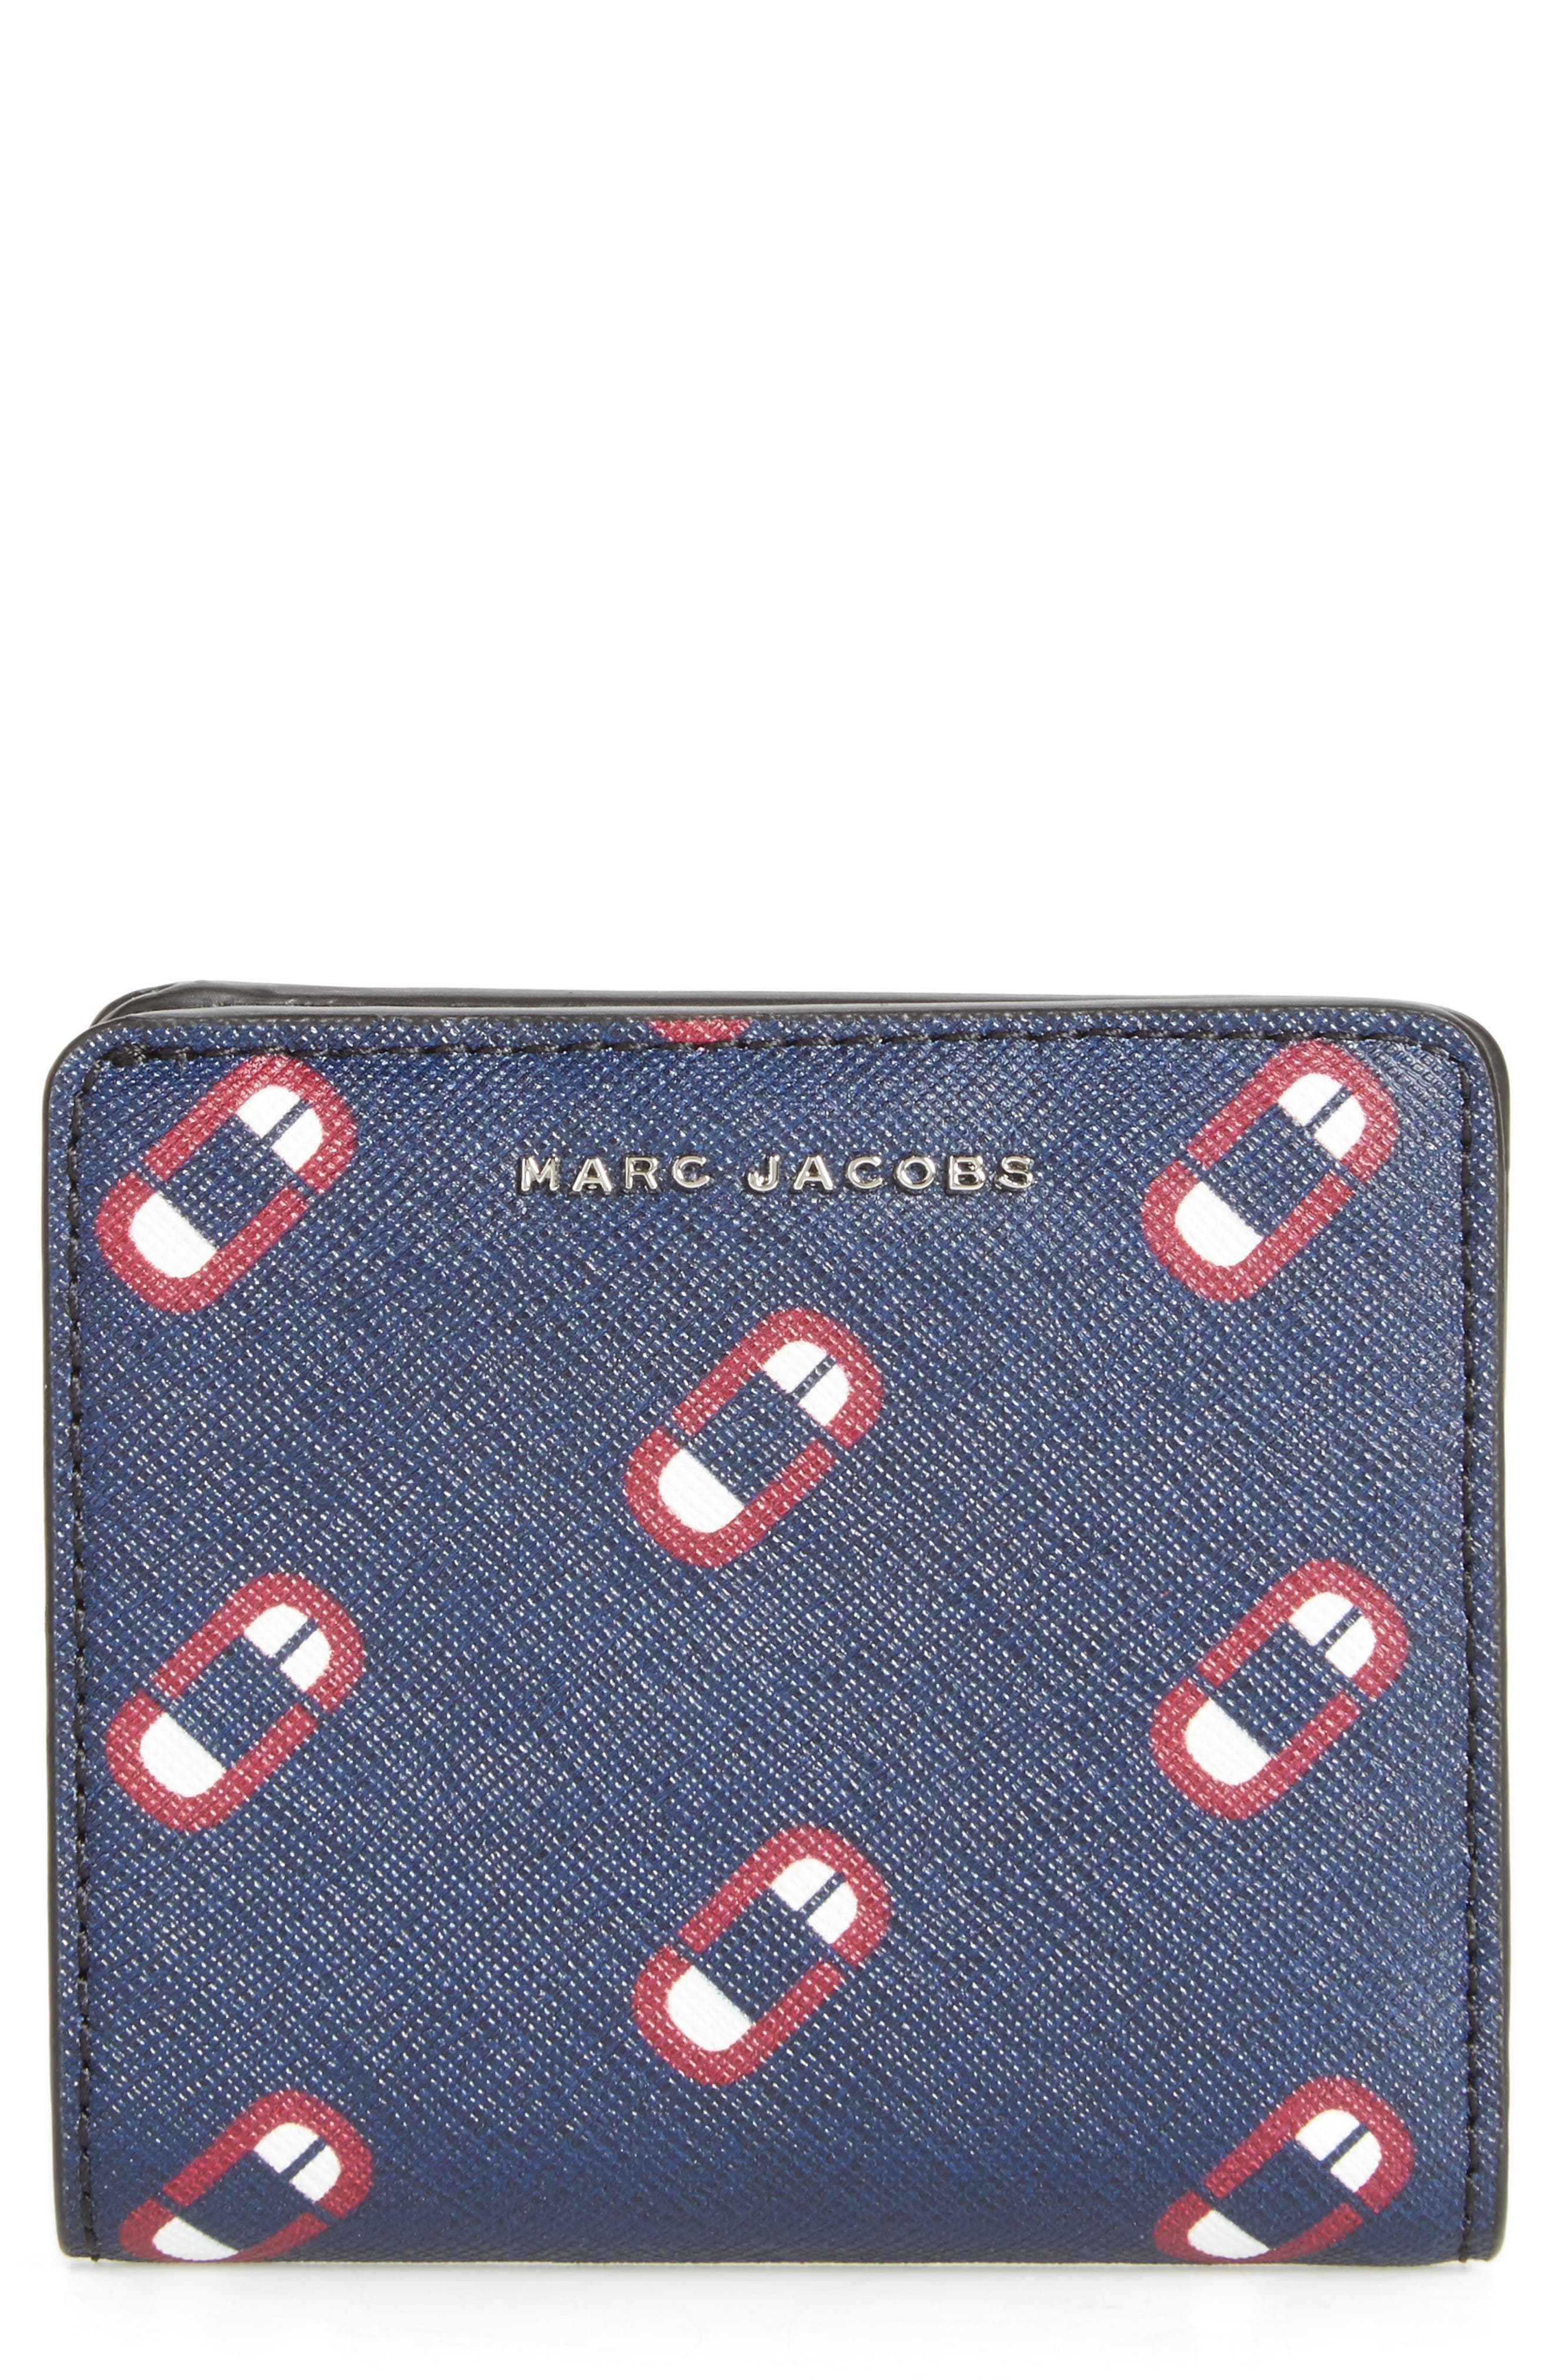 Main Image - MARC JACOBS Scream Saffiano Leather Wallet